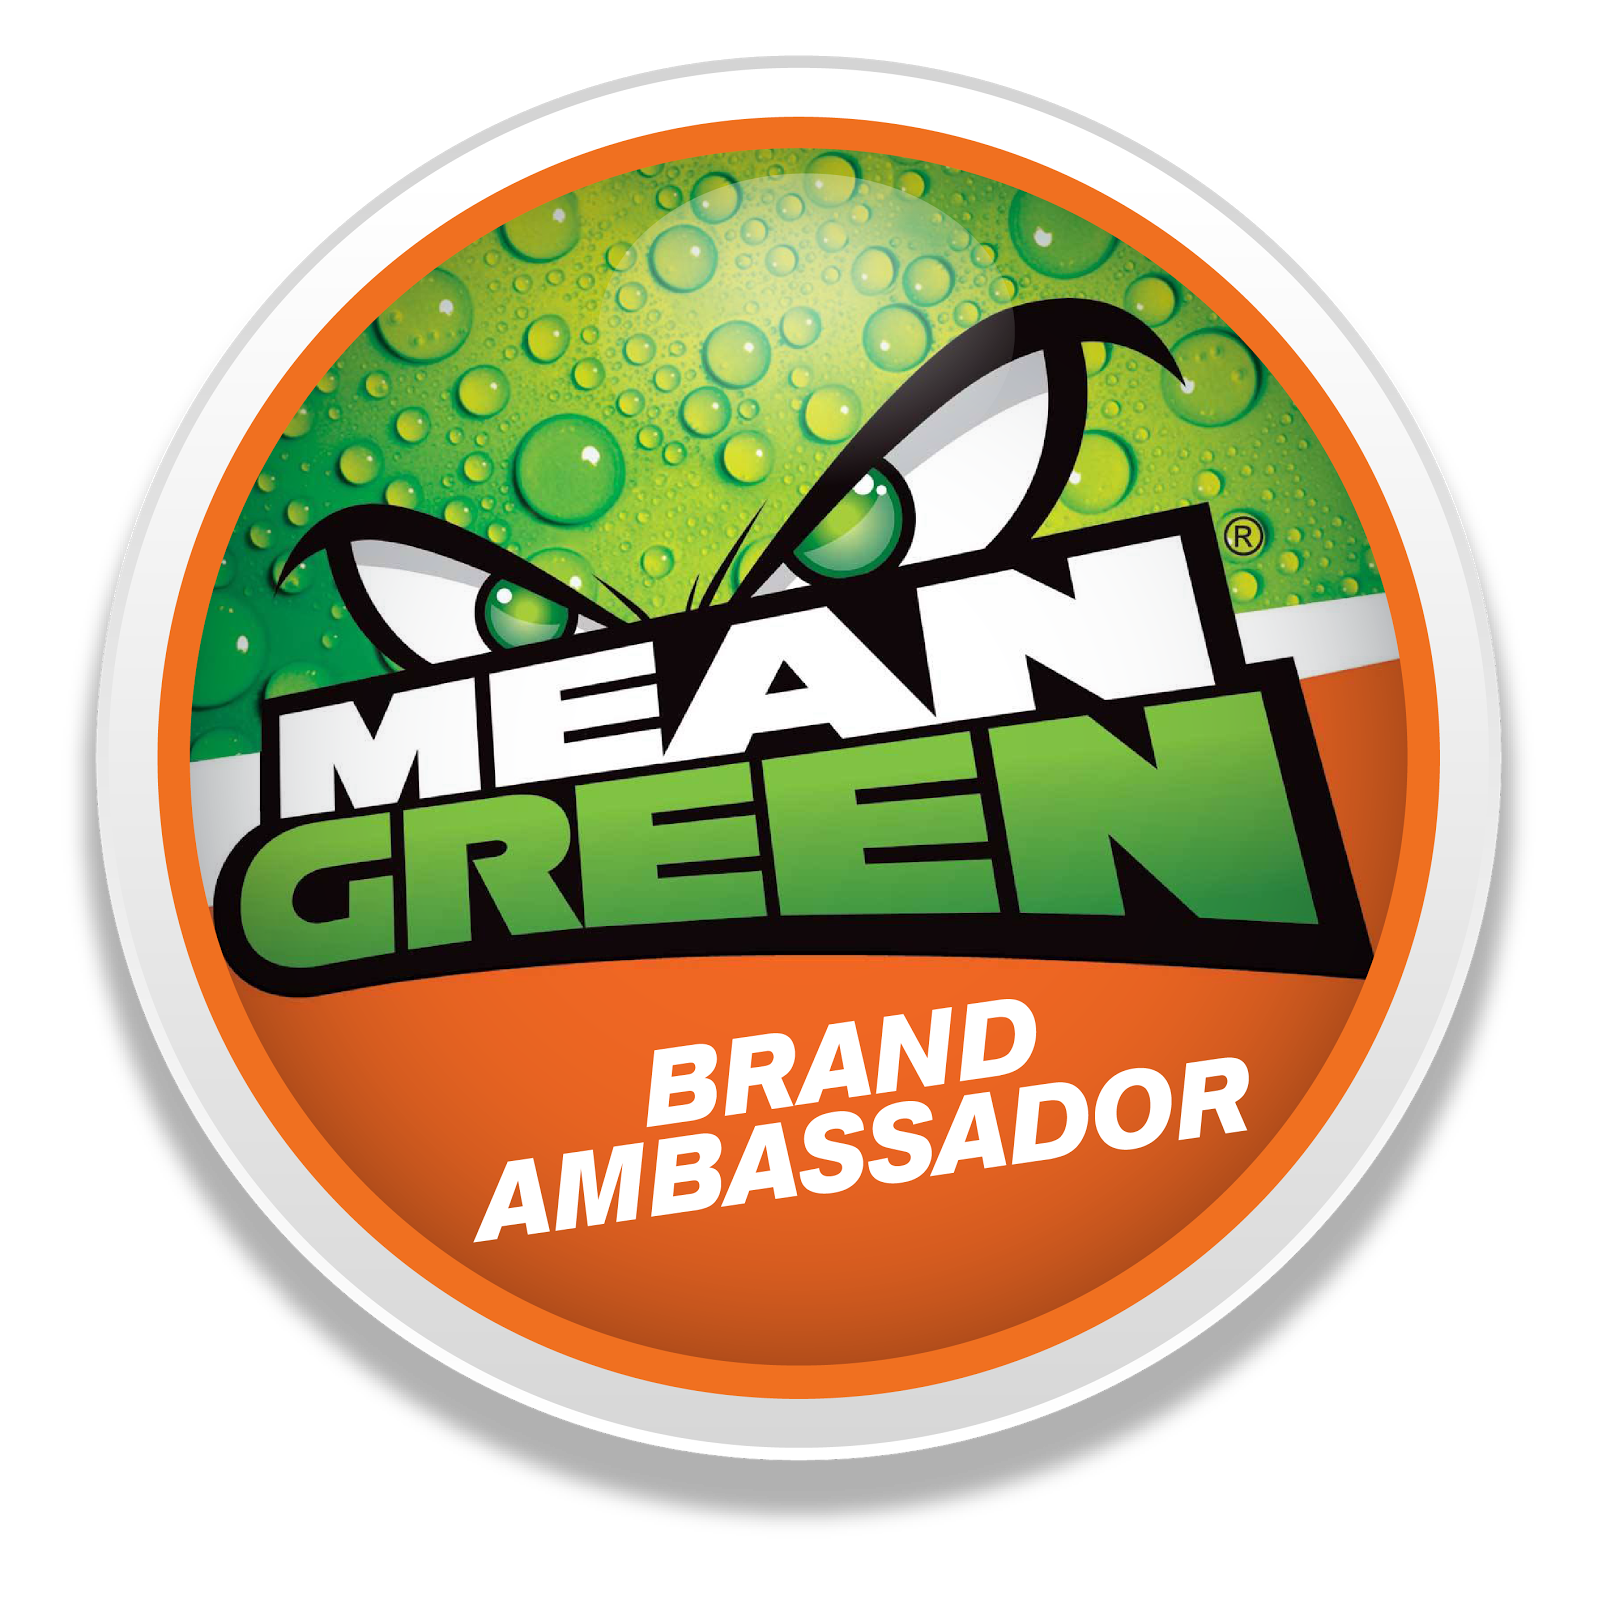 Mean Green Brand Ambassador